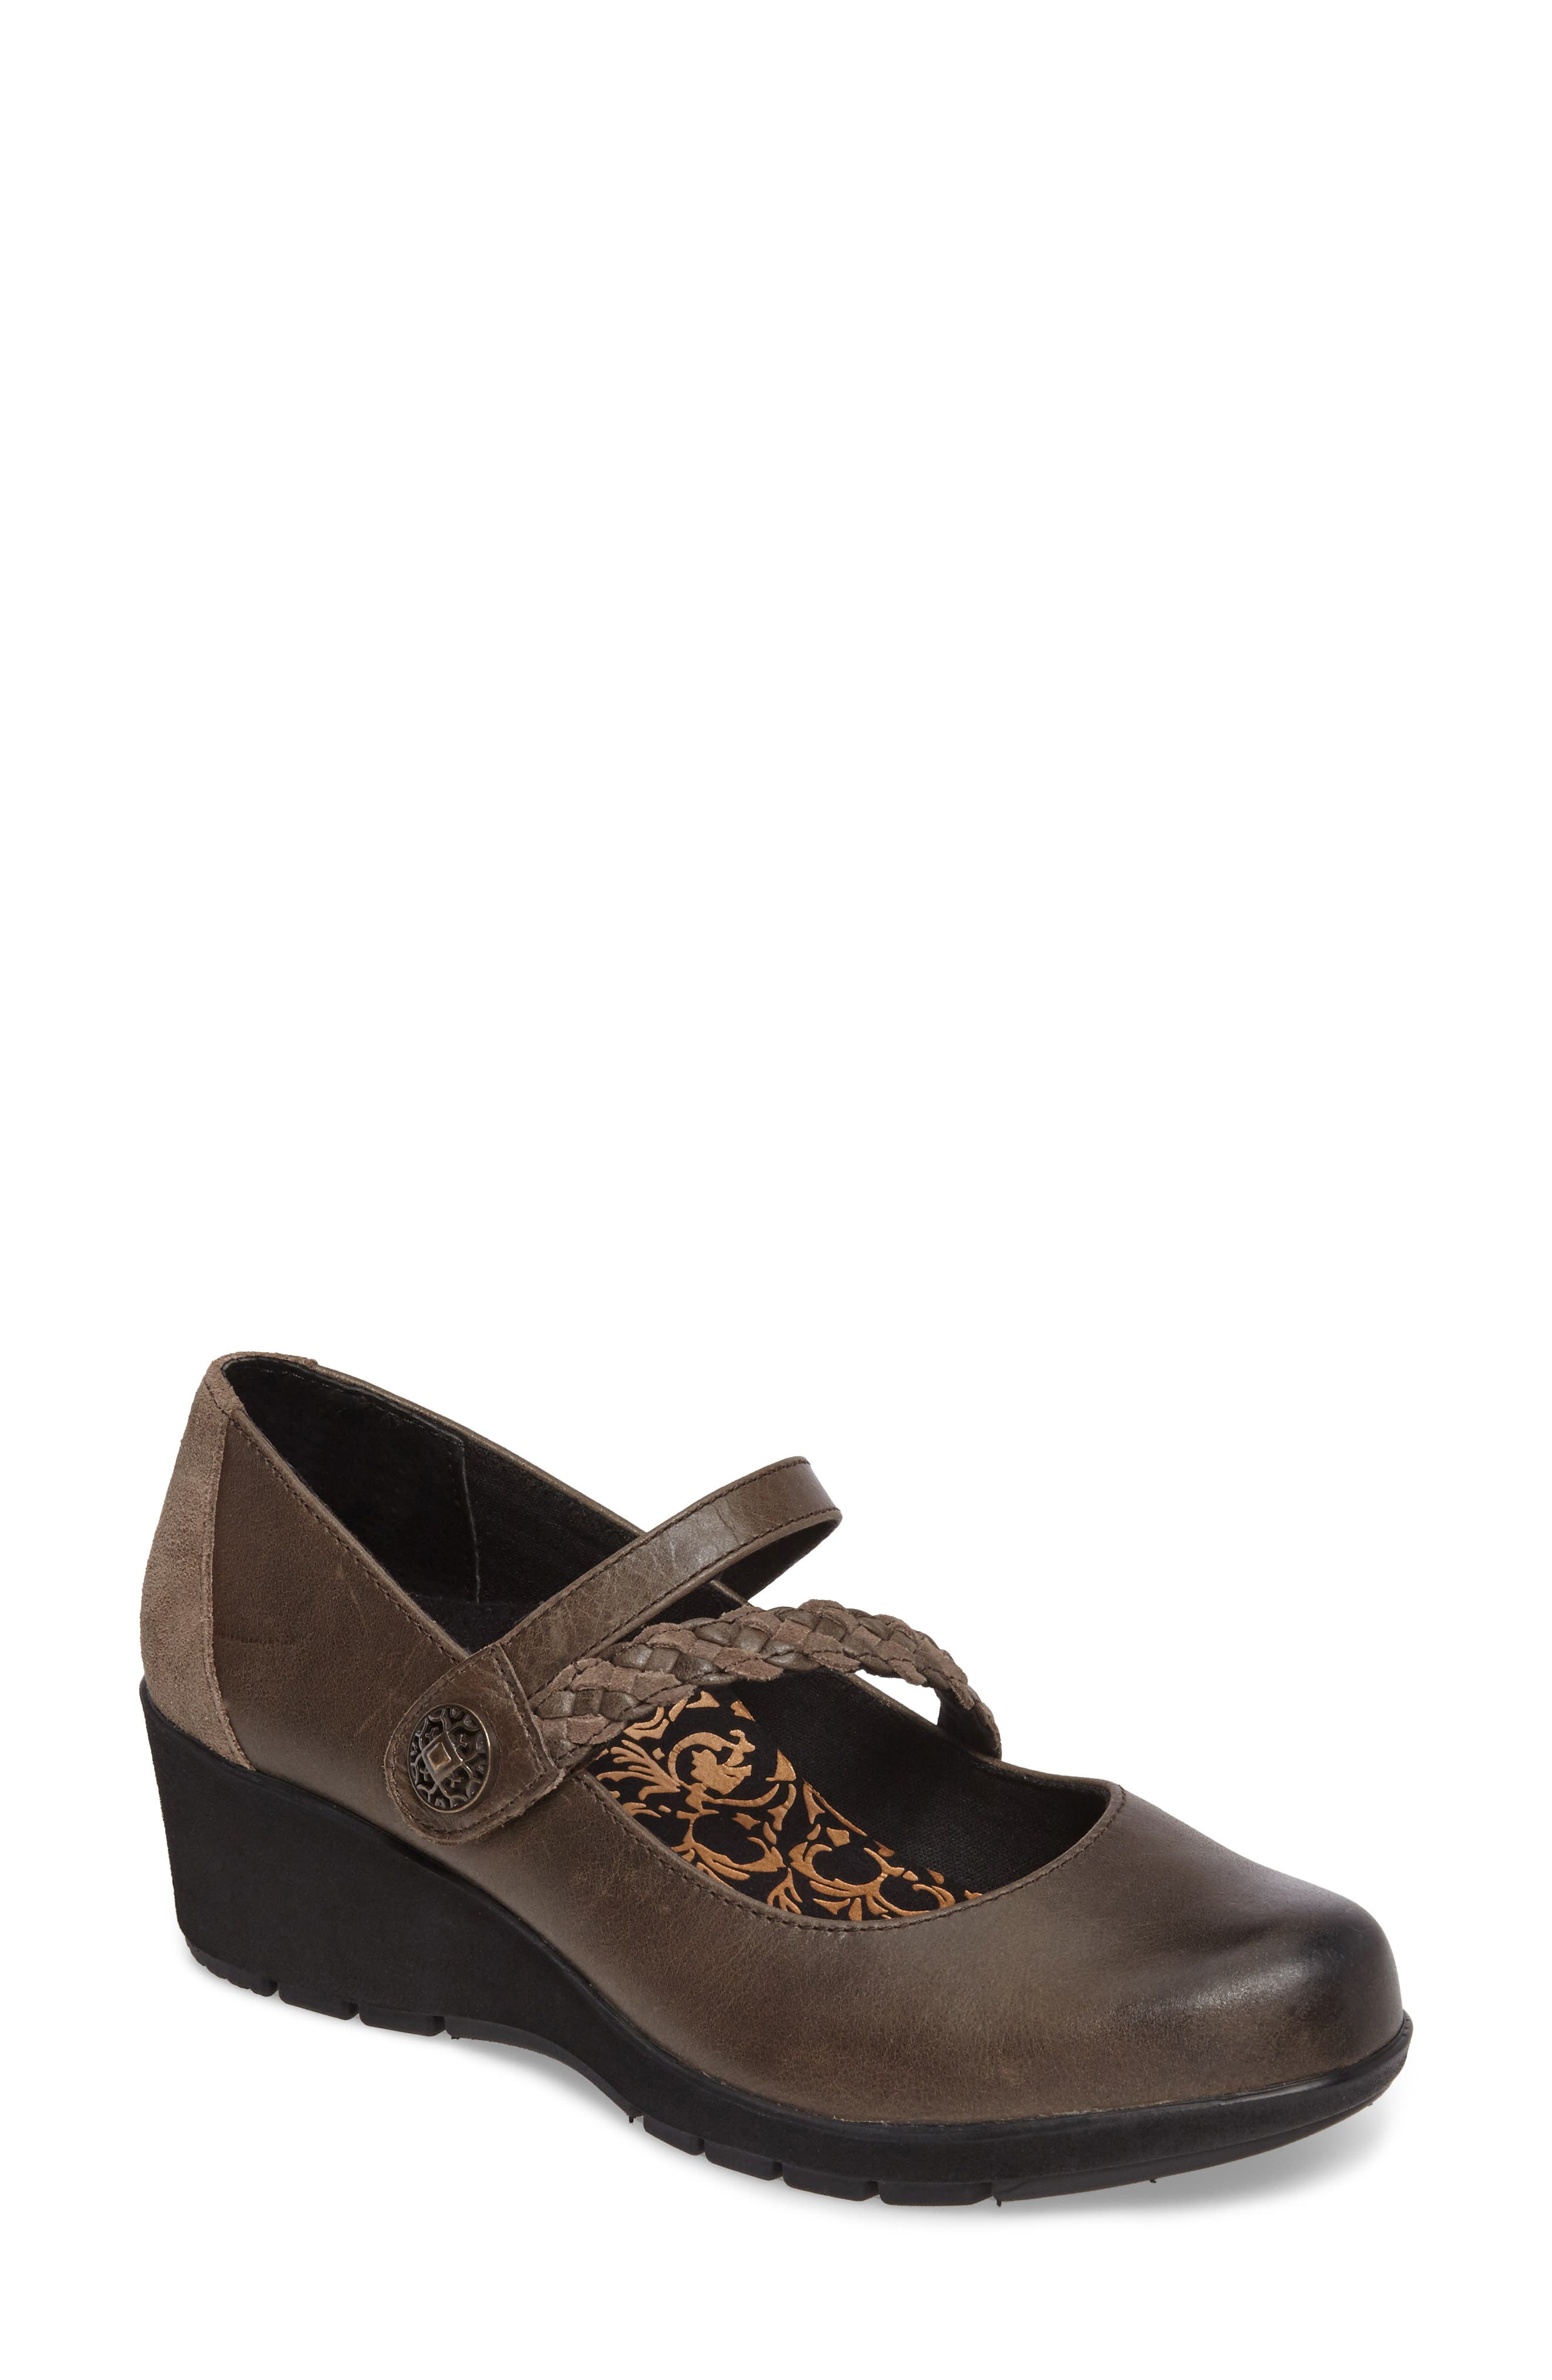 AETREX Ivy Mary Jane Wedge, Main, color, IRON LEATHER